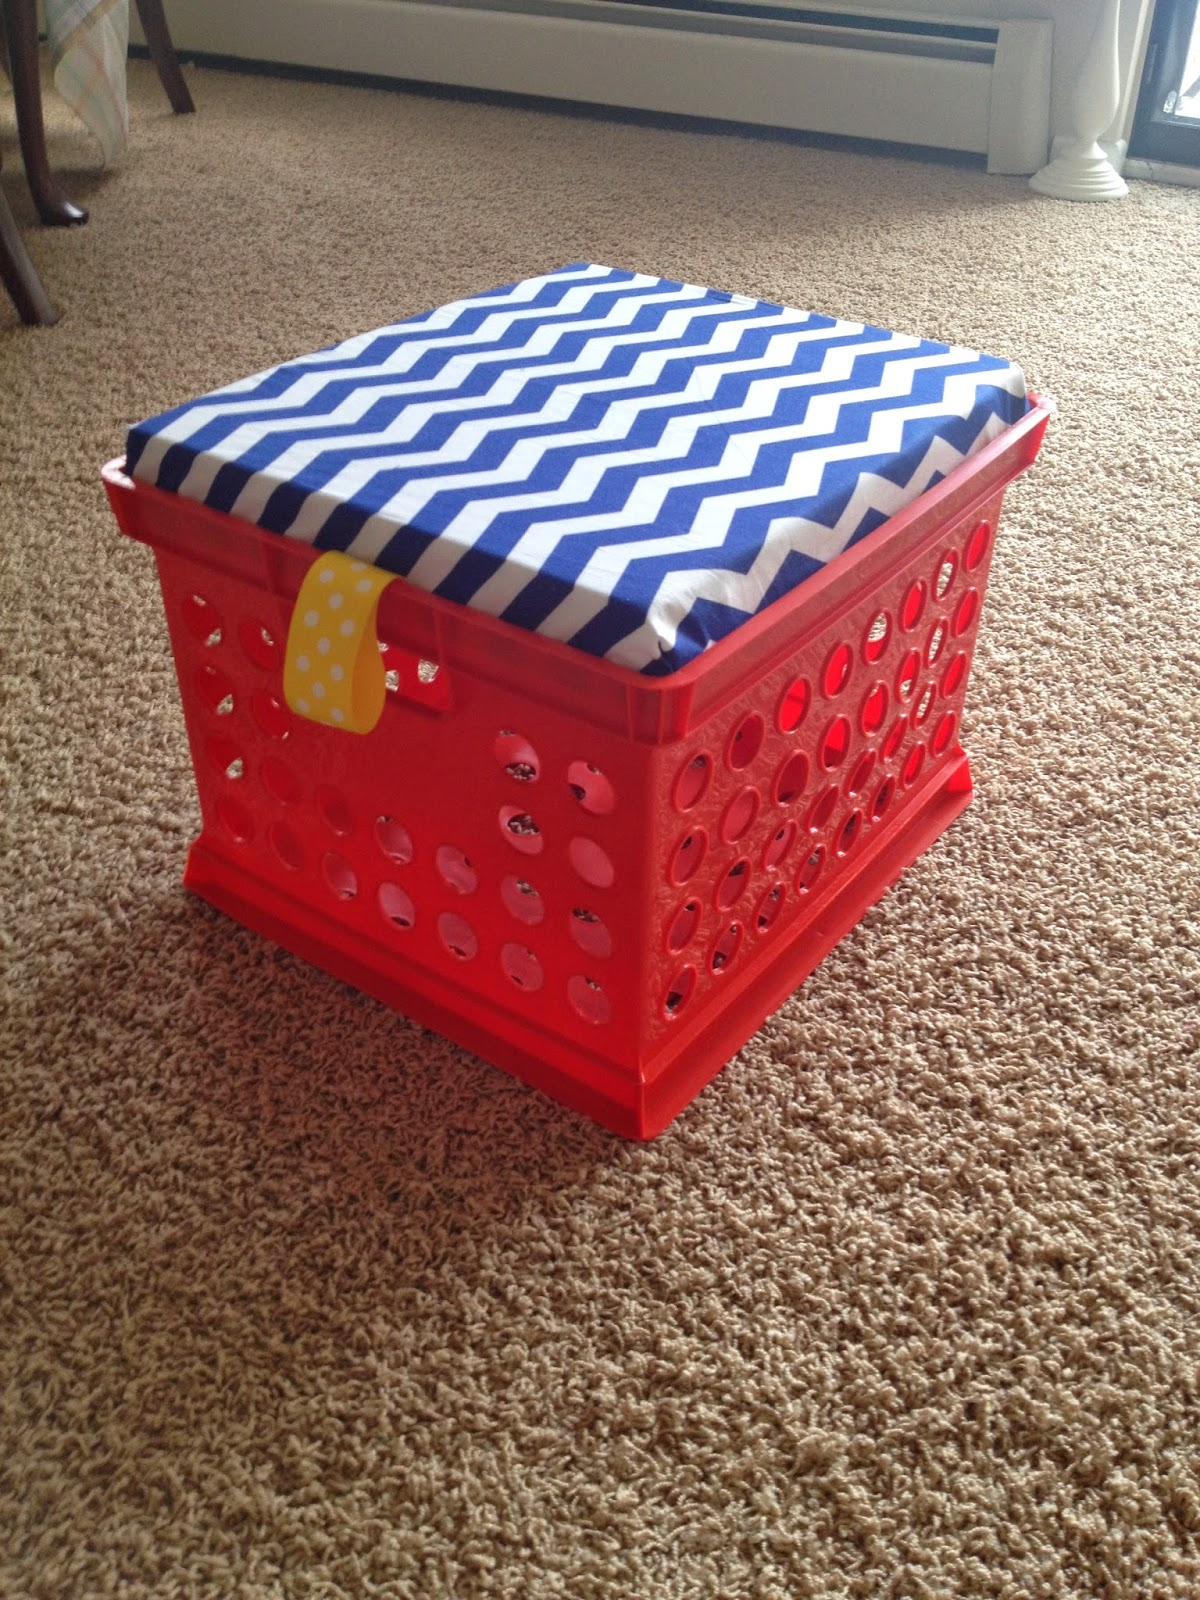 Gentil 7. Place Seat Lid Into The Crate And ENJOY Your New Milk Crate Storage Seats !!!